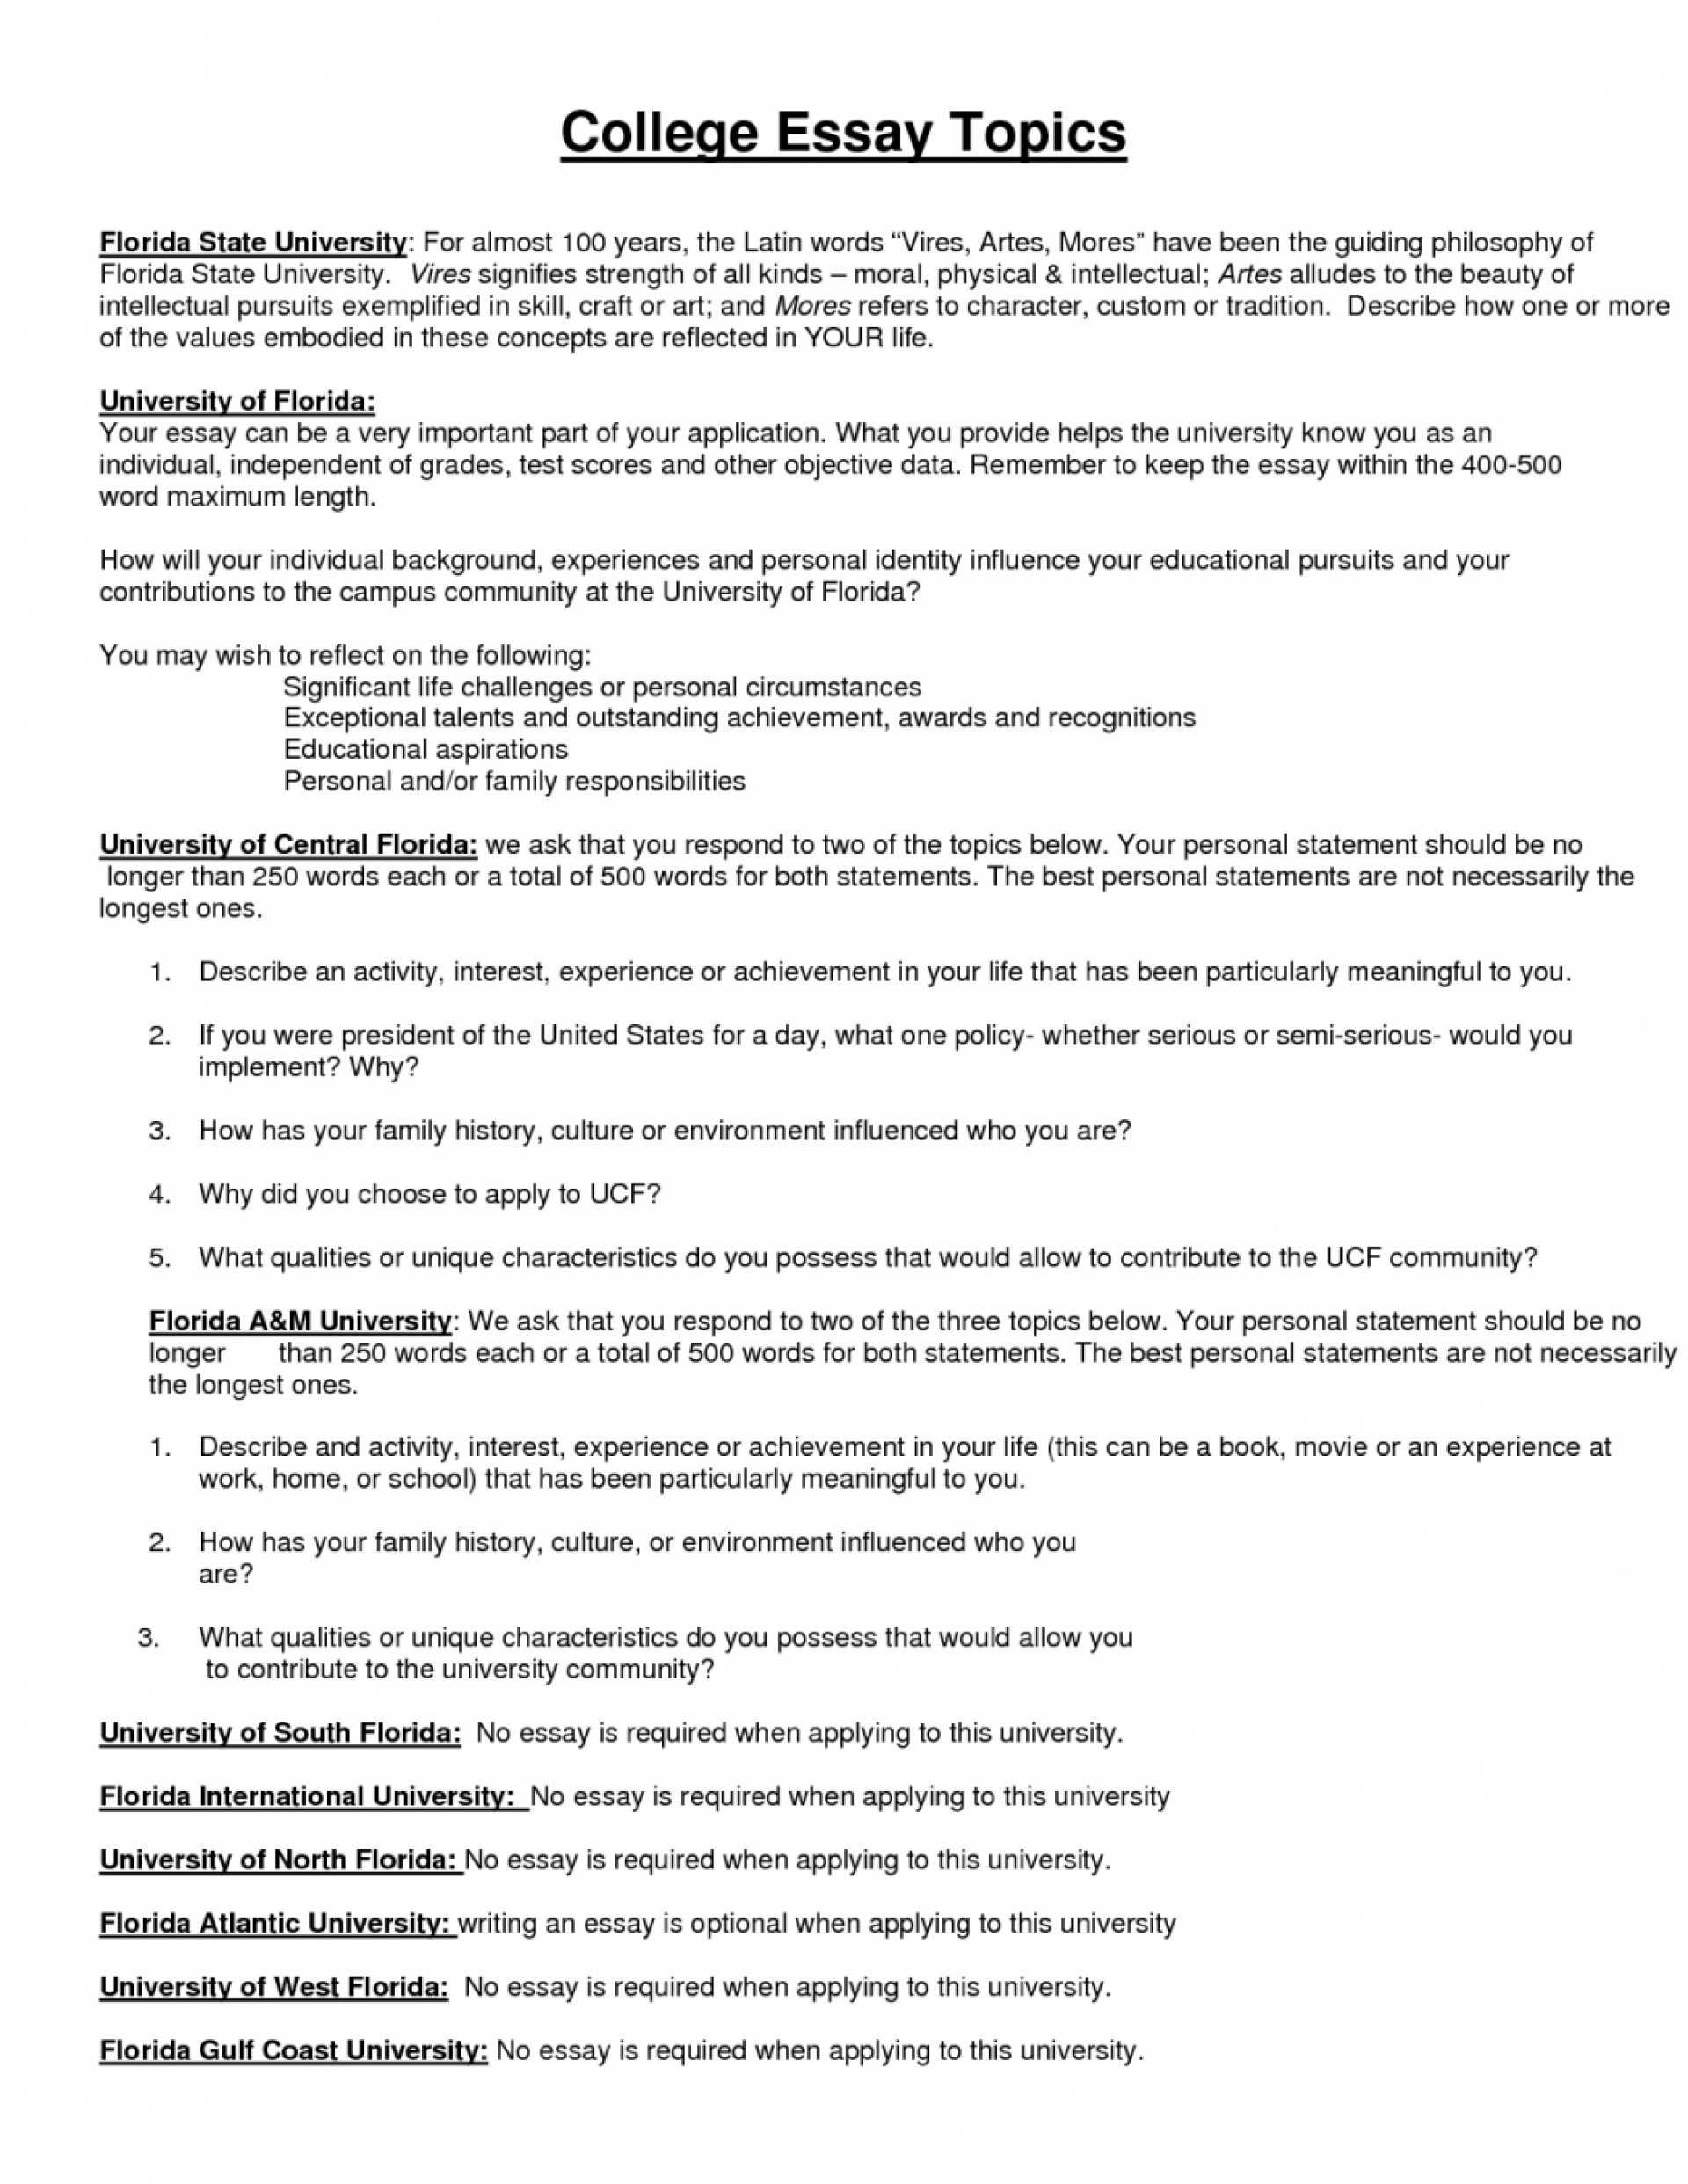 002 The Best College Essay Questions Fun Weird Typical For Towson Supplement Applications Answers Examples 1048x1356 Example Magnificent Quirk 1920